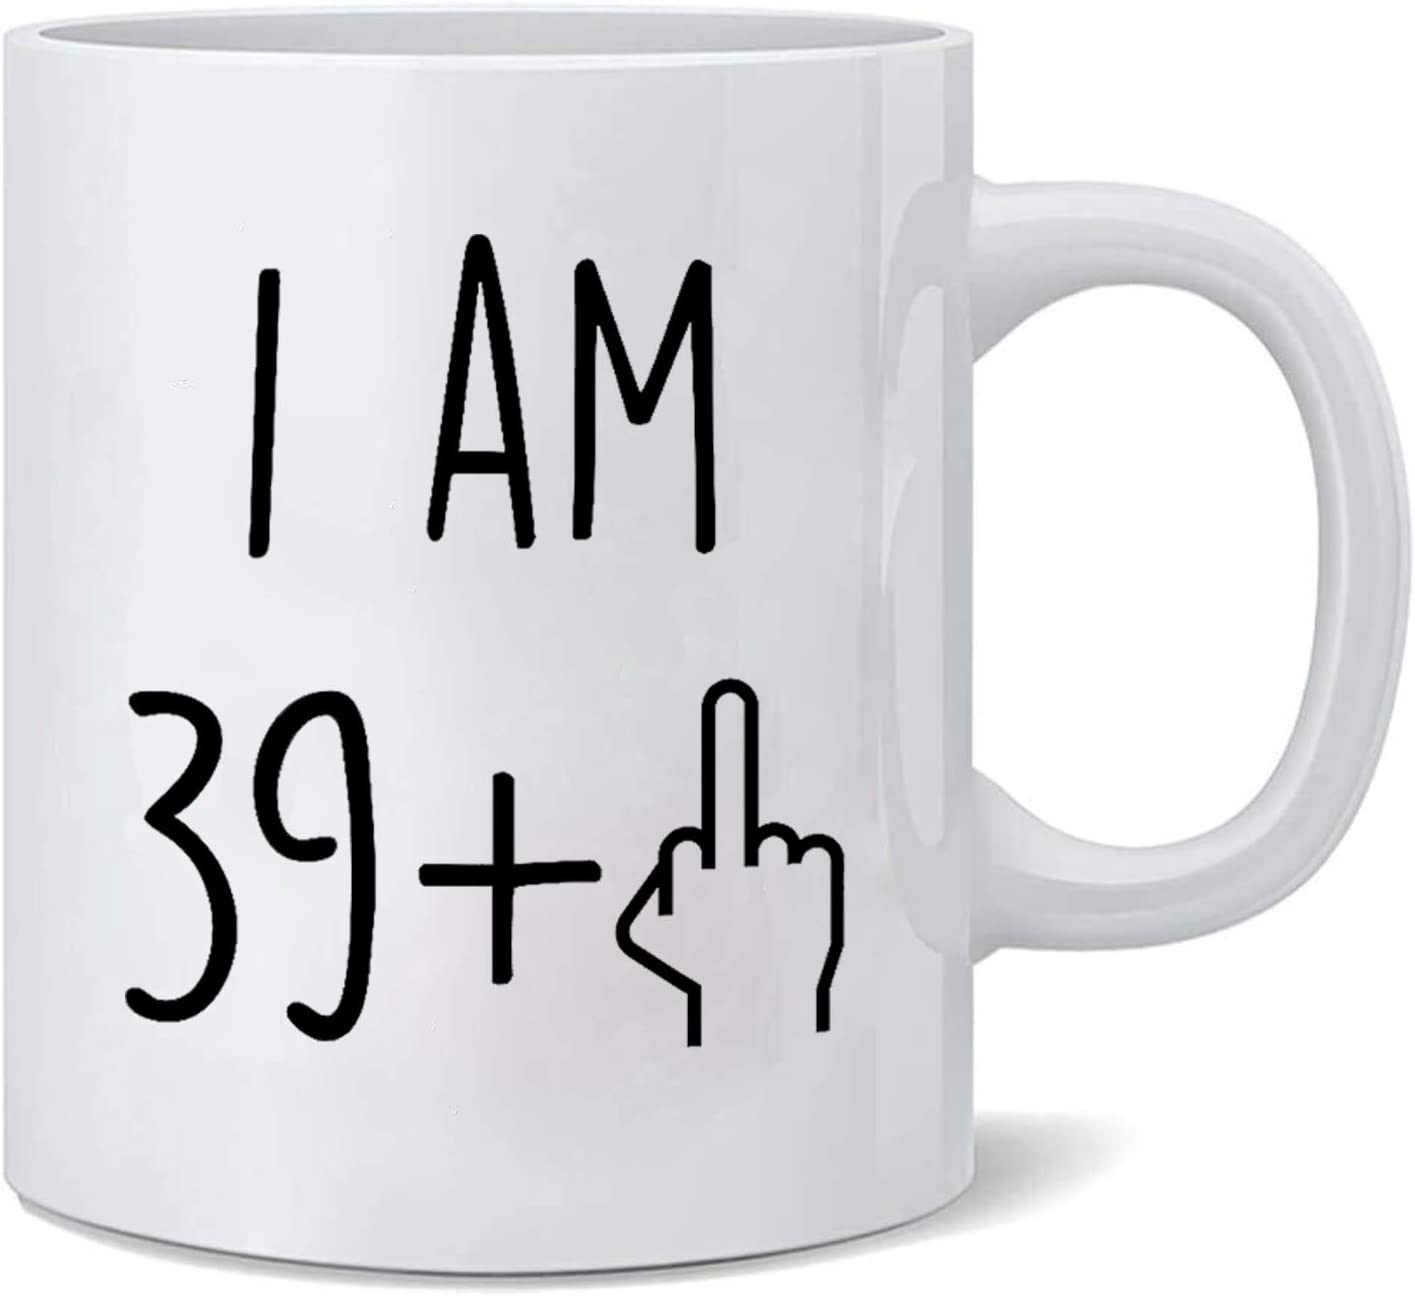 Amazon Com Funny 40th Birthday Mugs For Women And Men Ceramic Coffee Mugs Anniversary For Him Her Husband Or Wife Forty Gag Party Cup Idea Adult Mug For Mom Dad Kitchen